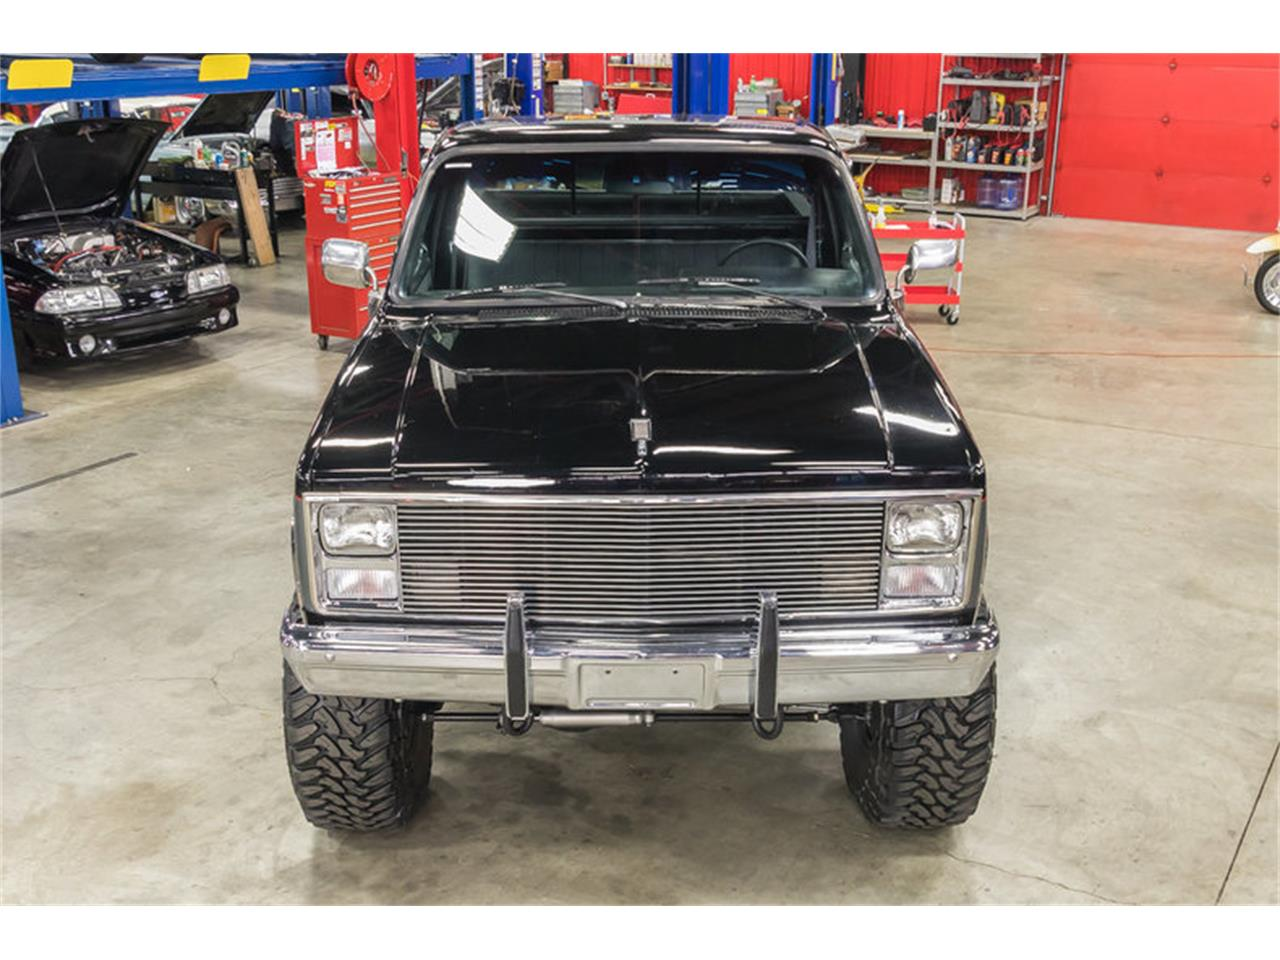 1987 Gmc Sierra 4x4 Pickup For Sale